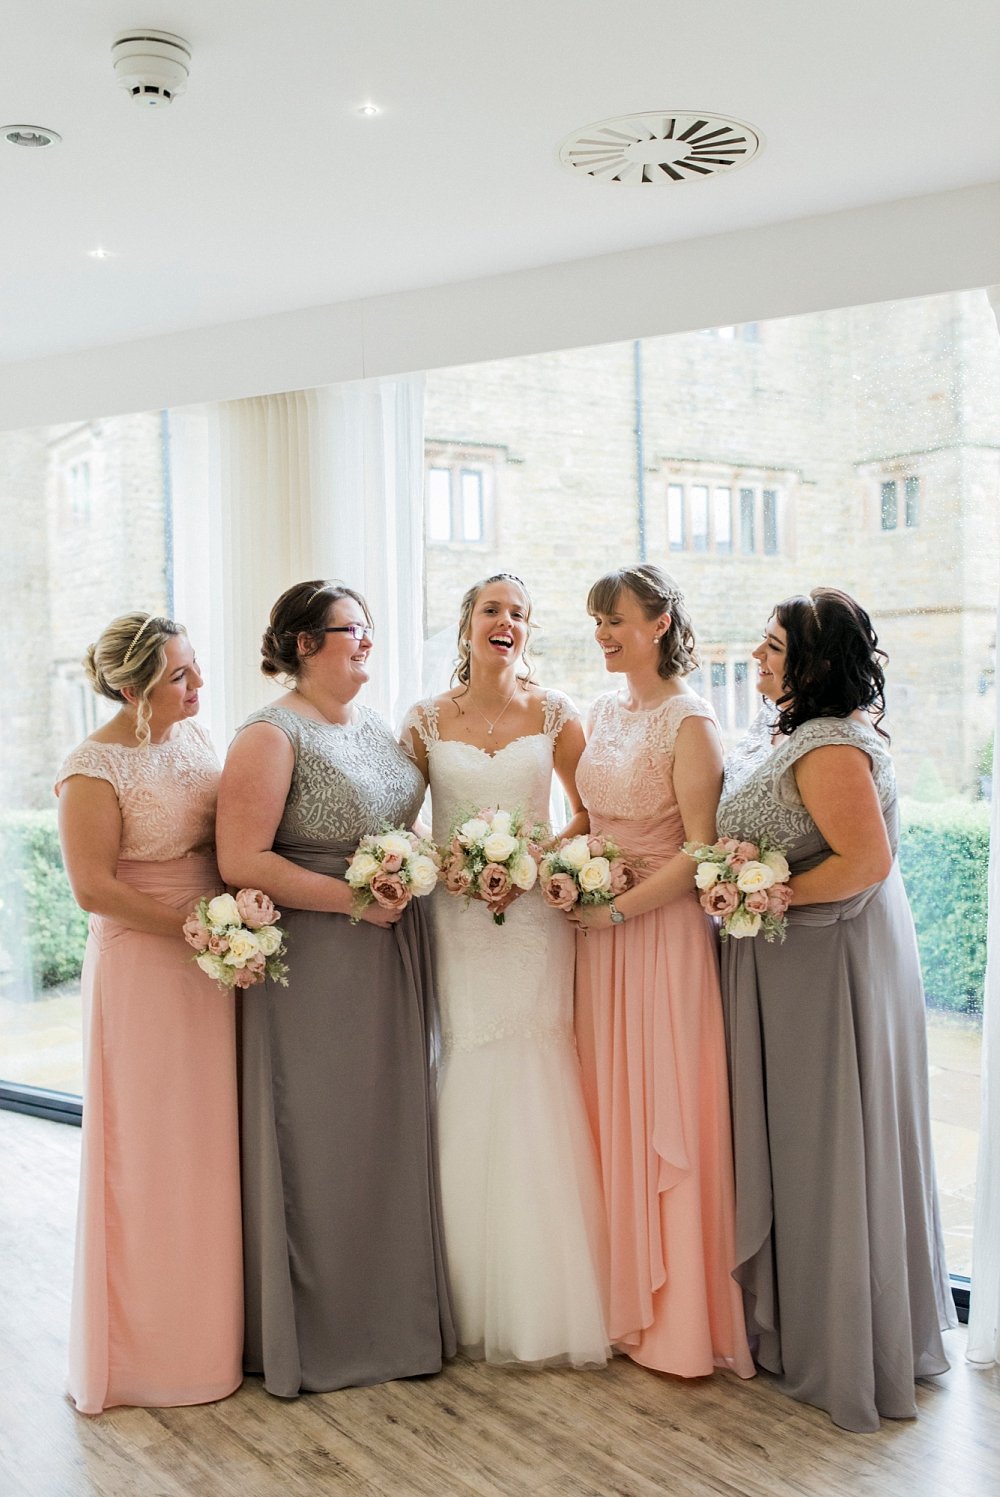 indoor wedding photos at stanley house hotel